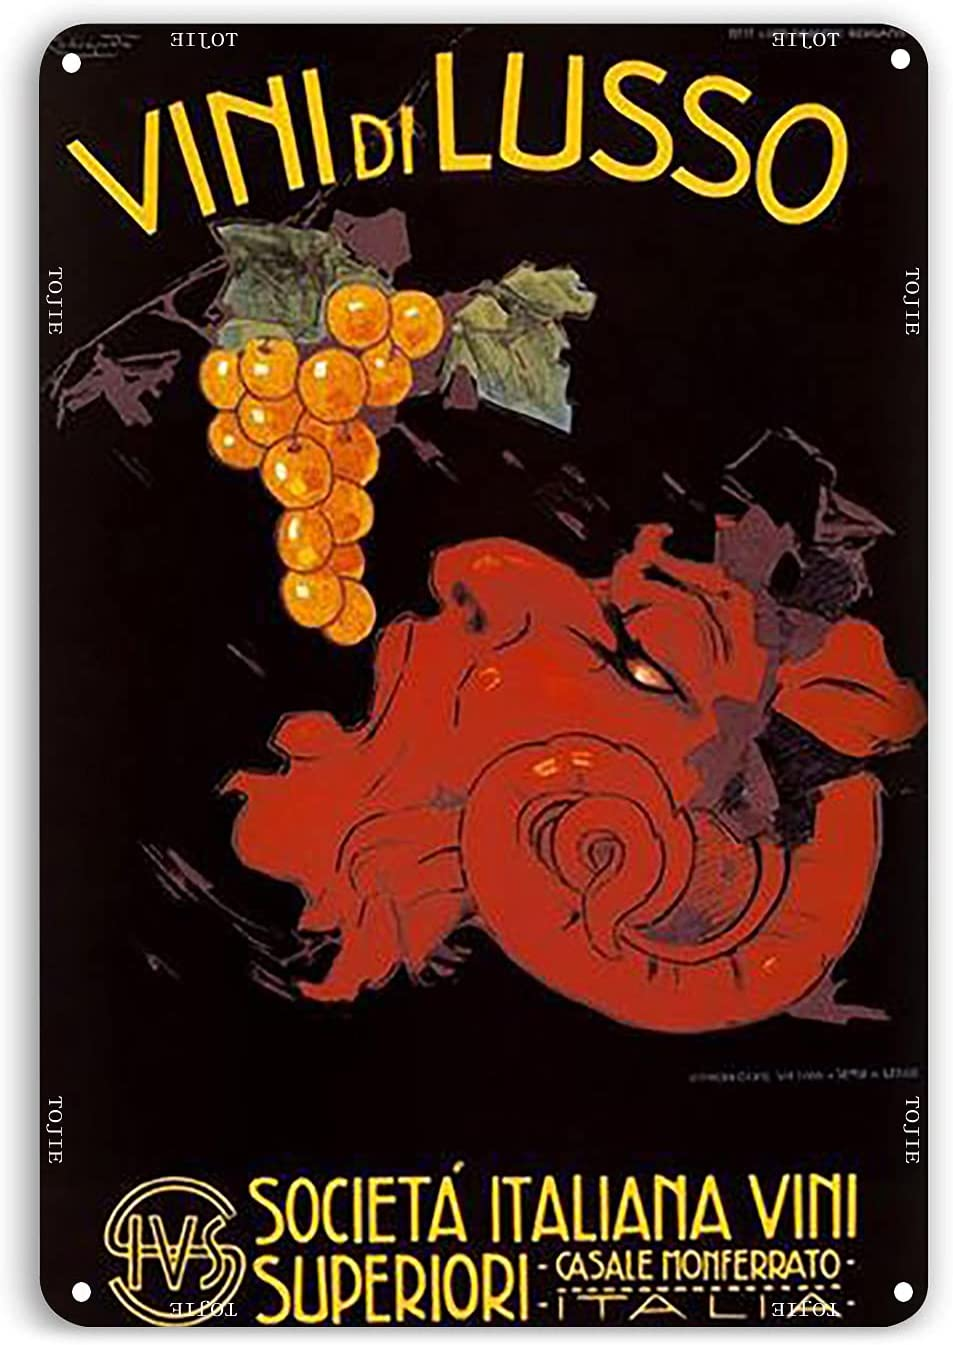 VINTAGE METAL SIGNS,metal art wall decor for living room,metal art,Italian Wine Poster Vintage Poster,Cotton Canvas,Food Decoration,Restaurant Wall Decor,12 x16 Inches Metal Signs,